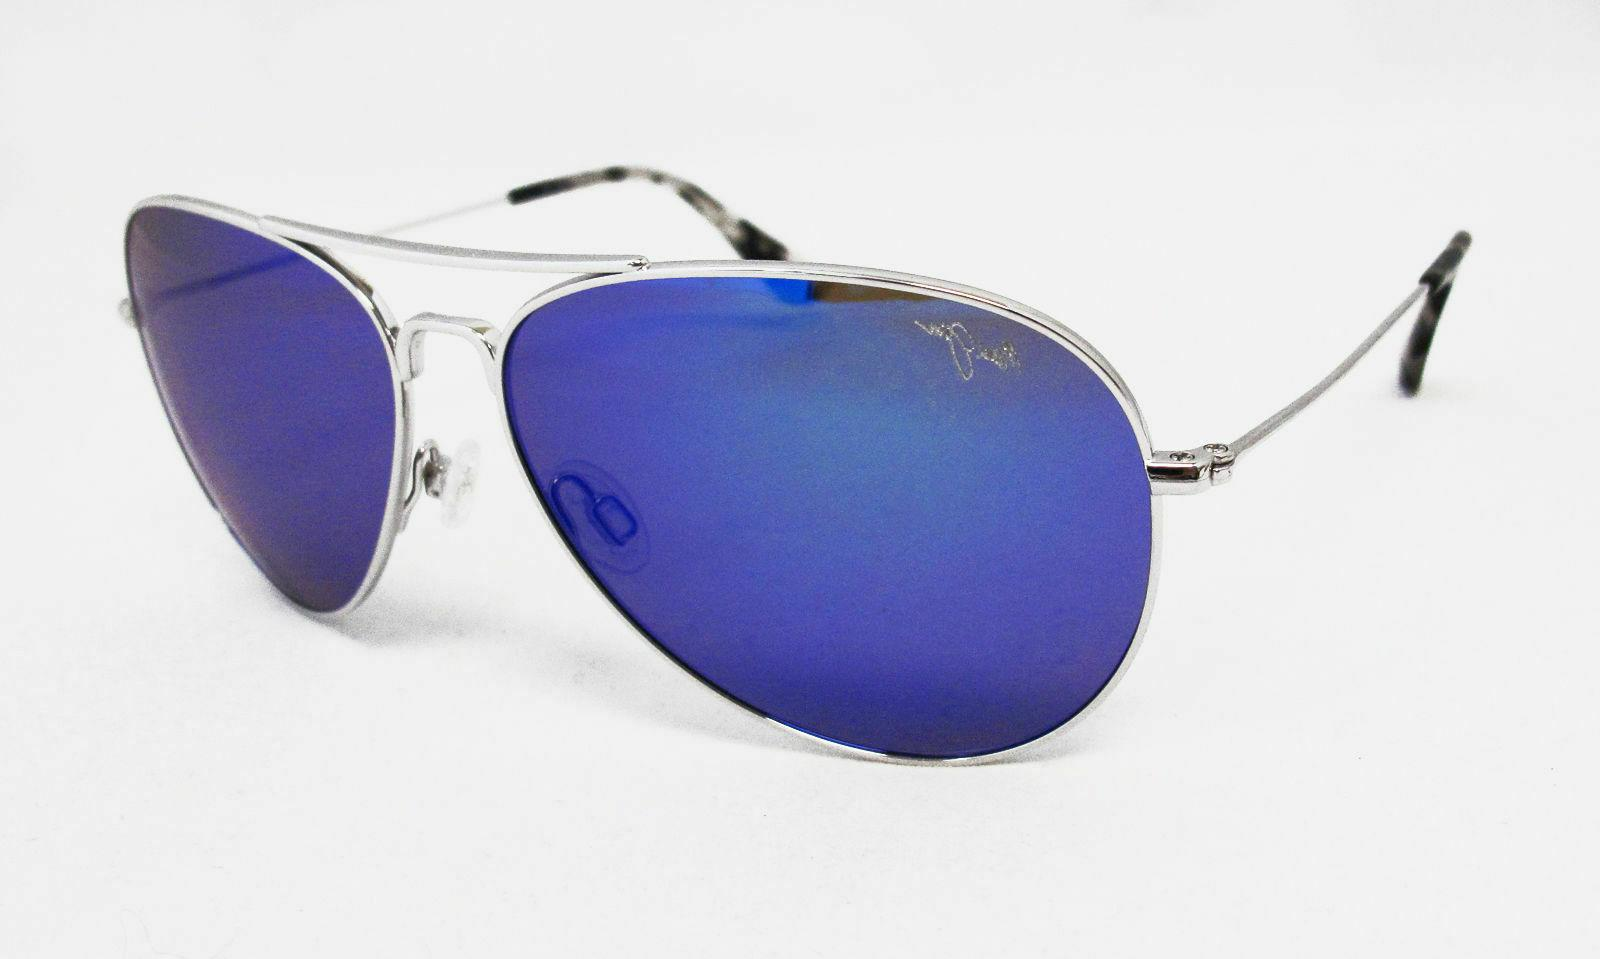 1 new mavericks polarized sunglasses b264 17